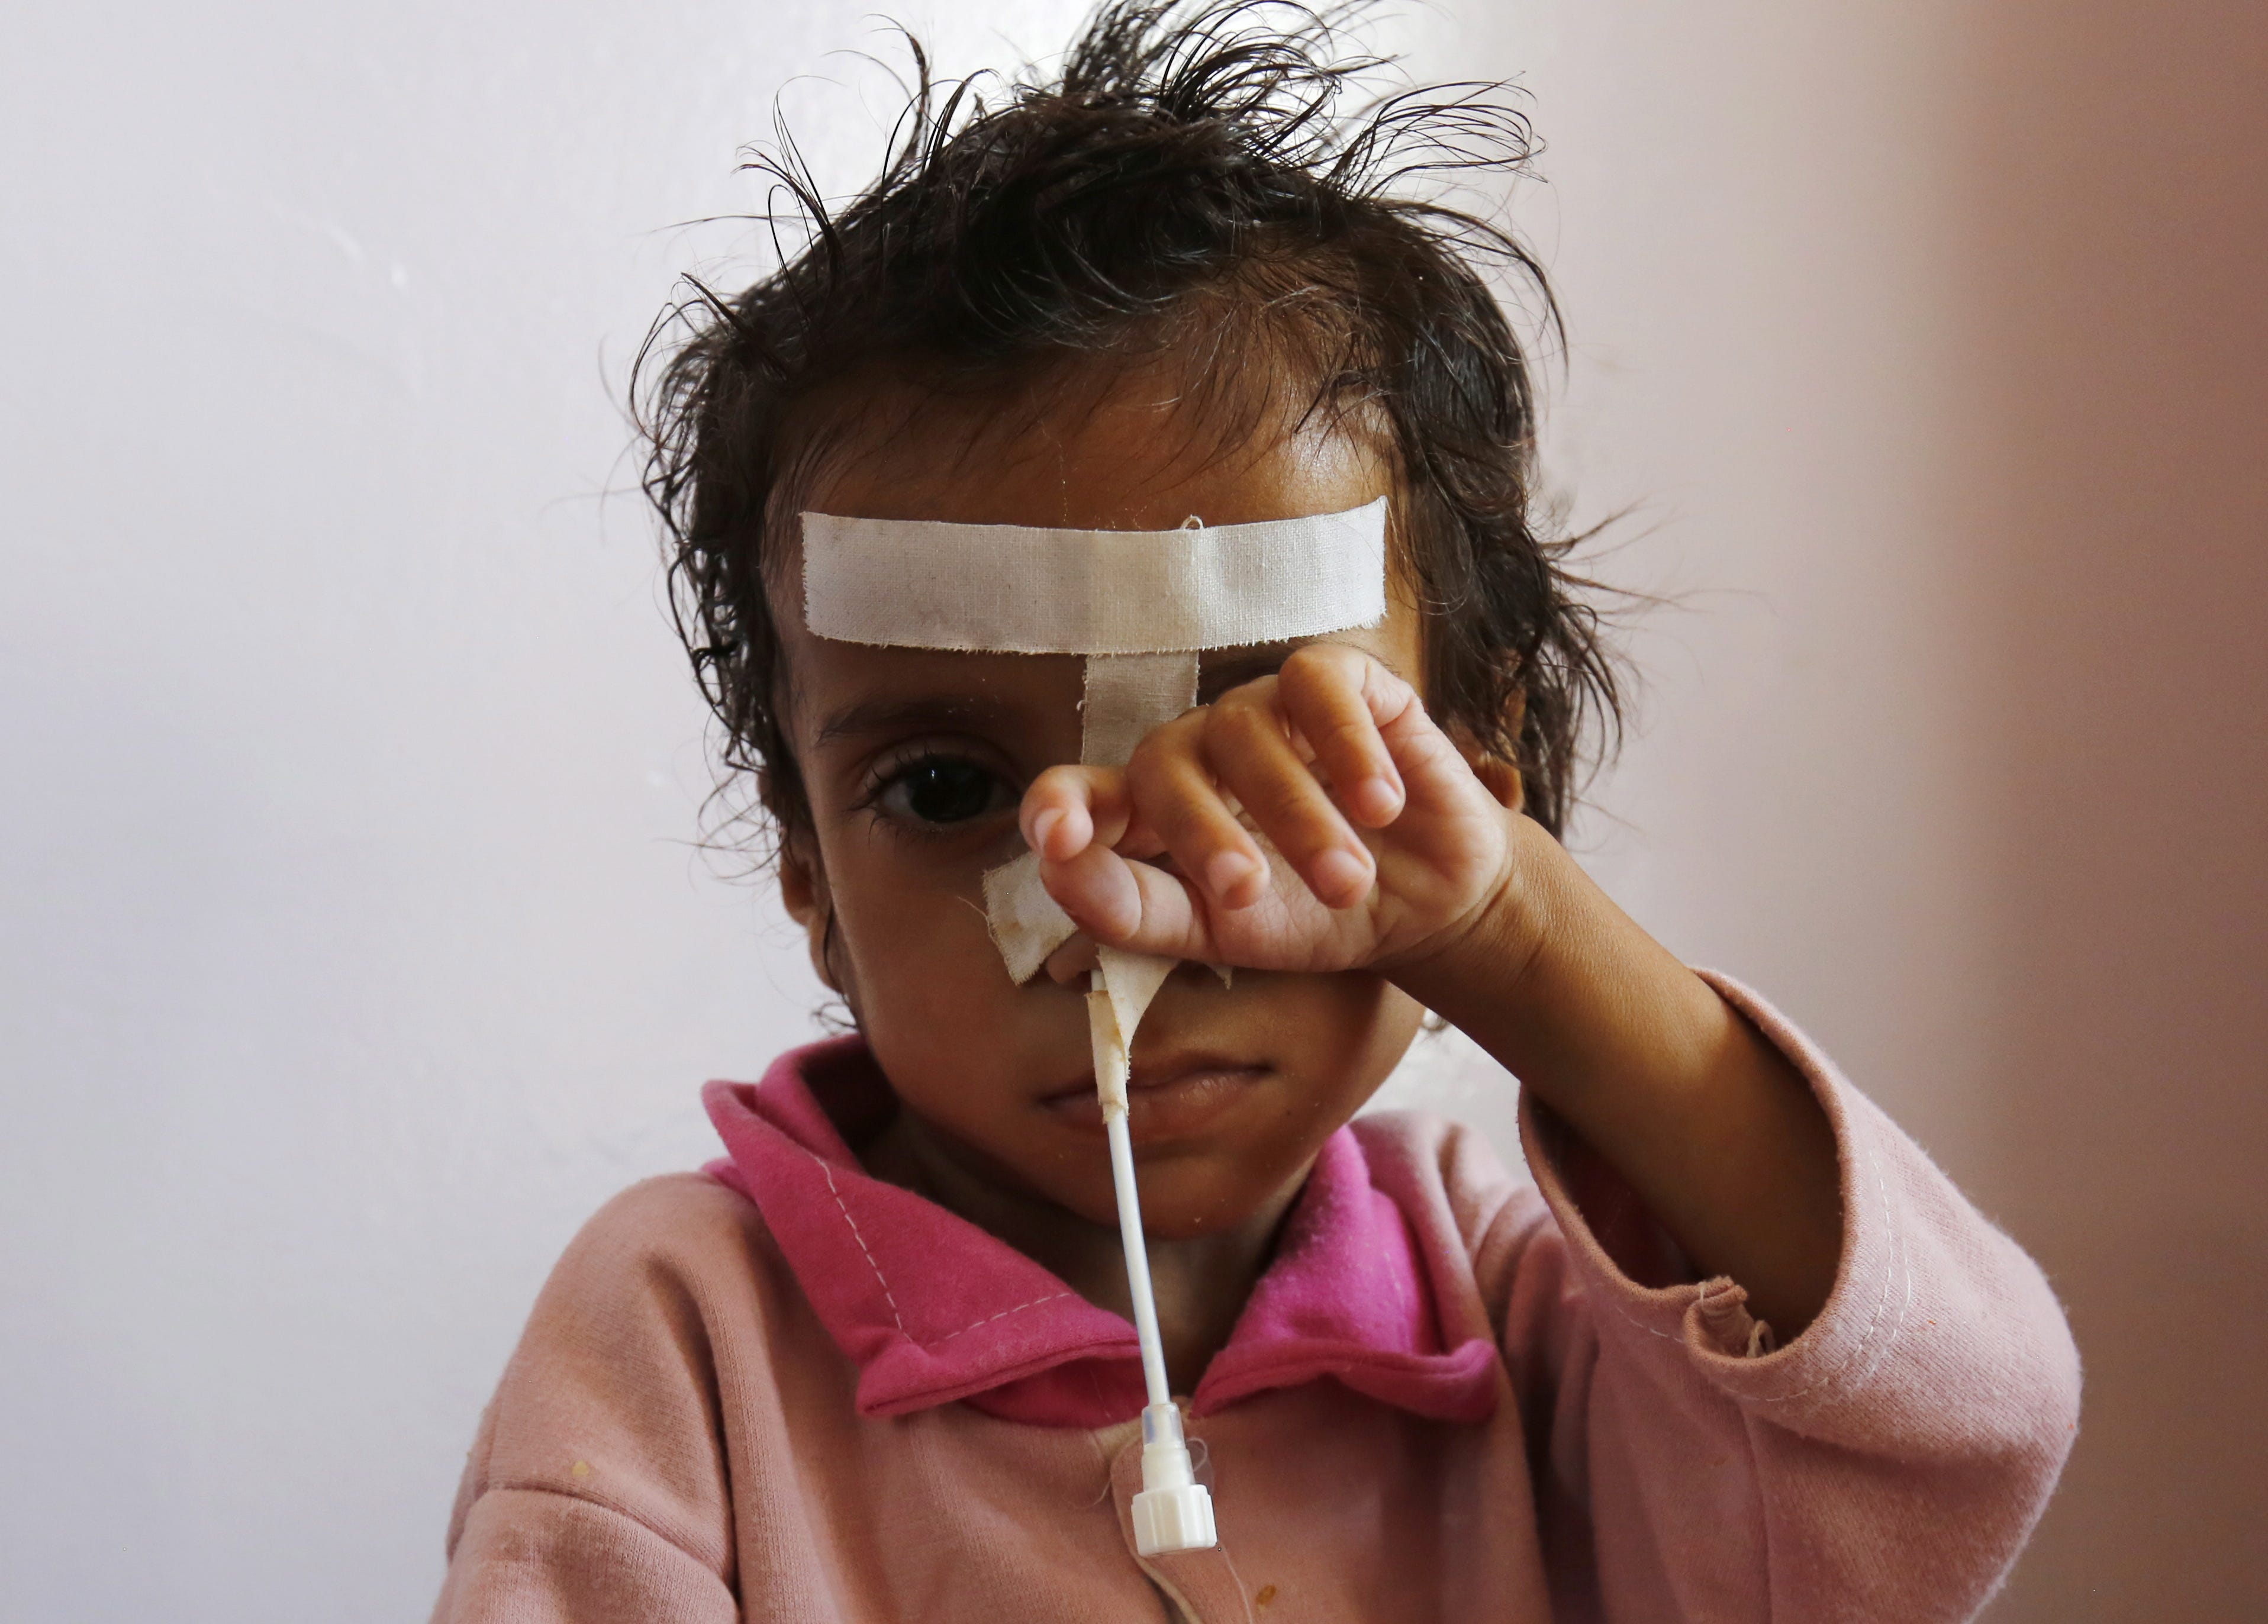 A malnourished child receives medical attention at a malnutrition treatment center in Sana'a, Yemen on March 18, 2019. According to reports, over two million children in Yemen are suffering from acute malnutrition, including 400,000 severe acutely malnourished children fighting for their lives. Nearly 30,000 children under five die every year from diseases caused by the malnutrition in the war-torn Arab country.